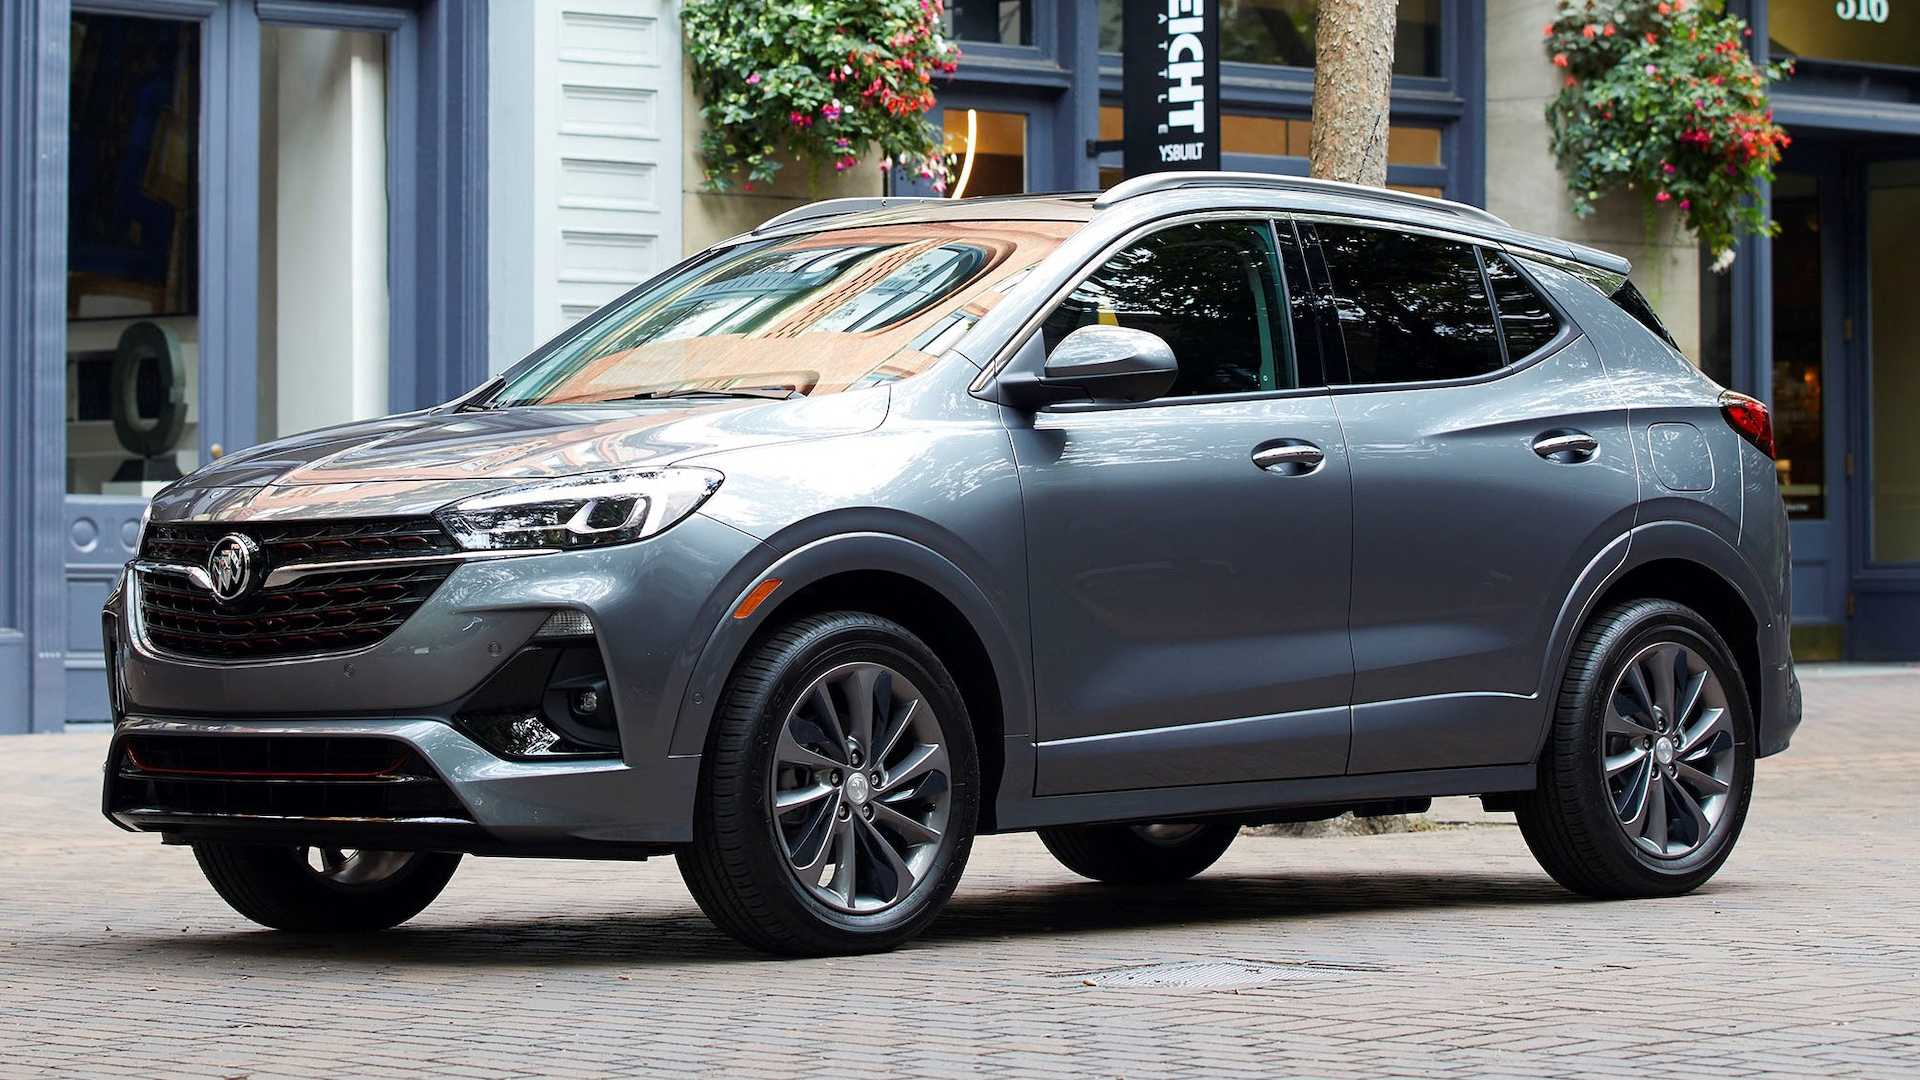 2021 Buick Encore Gx Details Emerge: Styling Tweaks, More Tech 2022 Buick Encore Gx Preferred, Problems, Photos